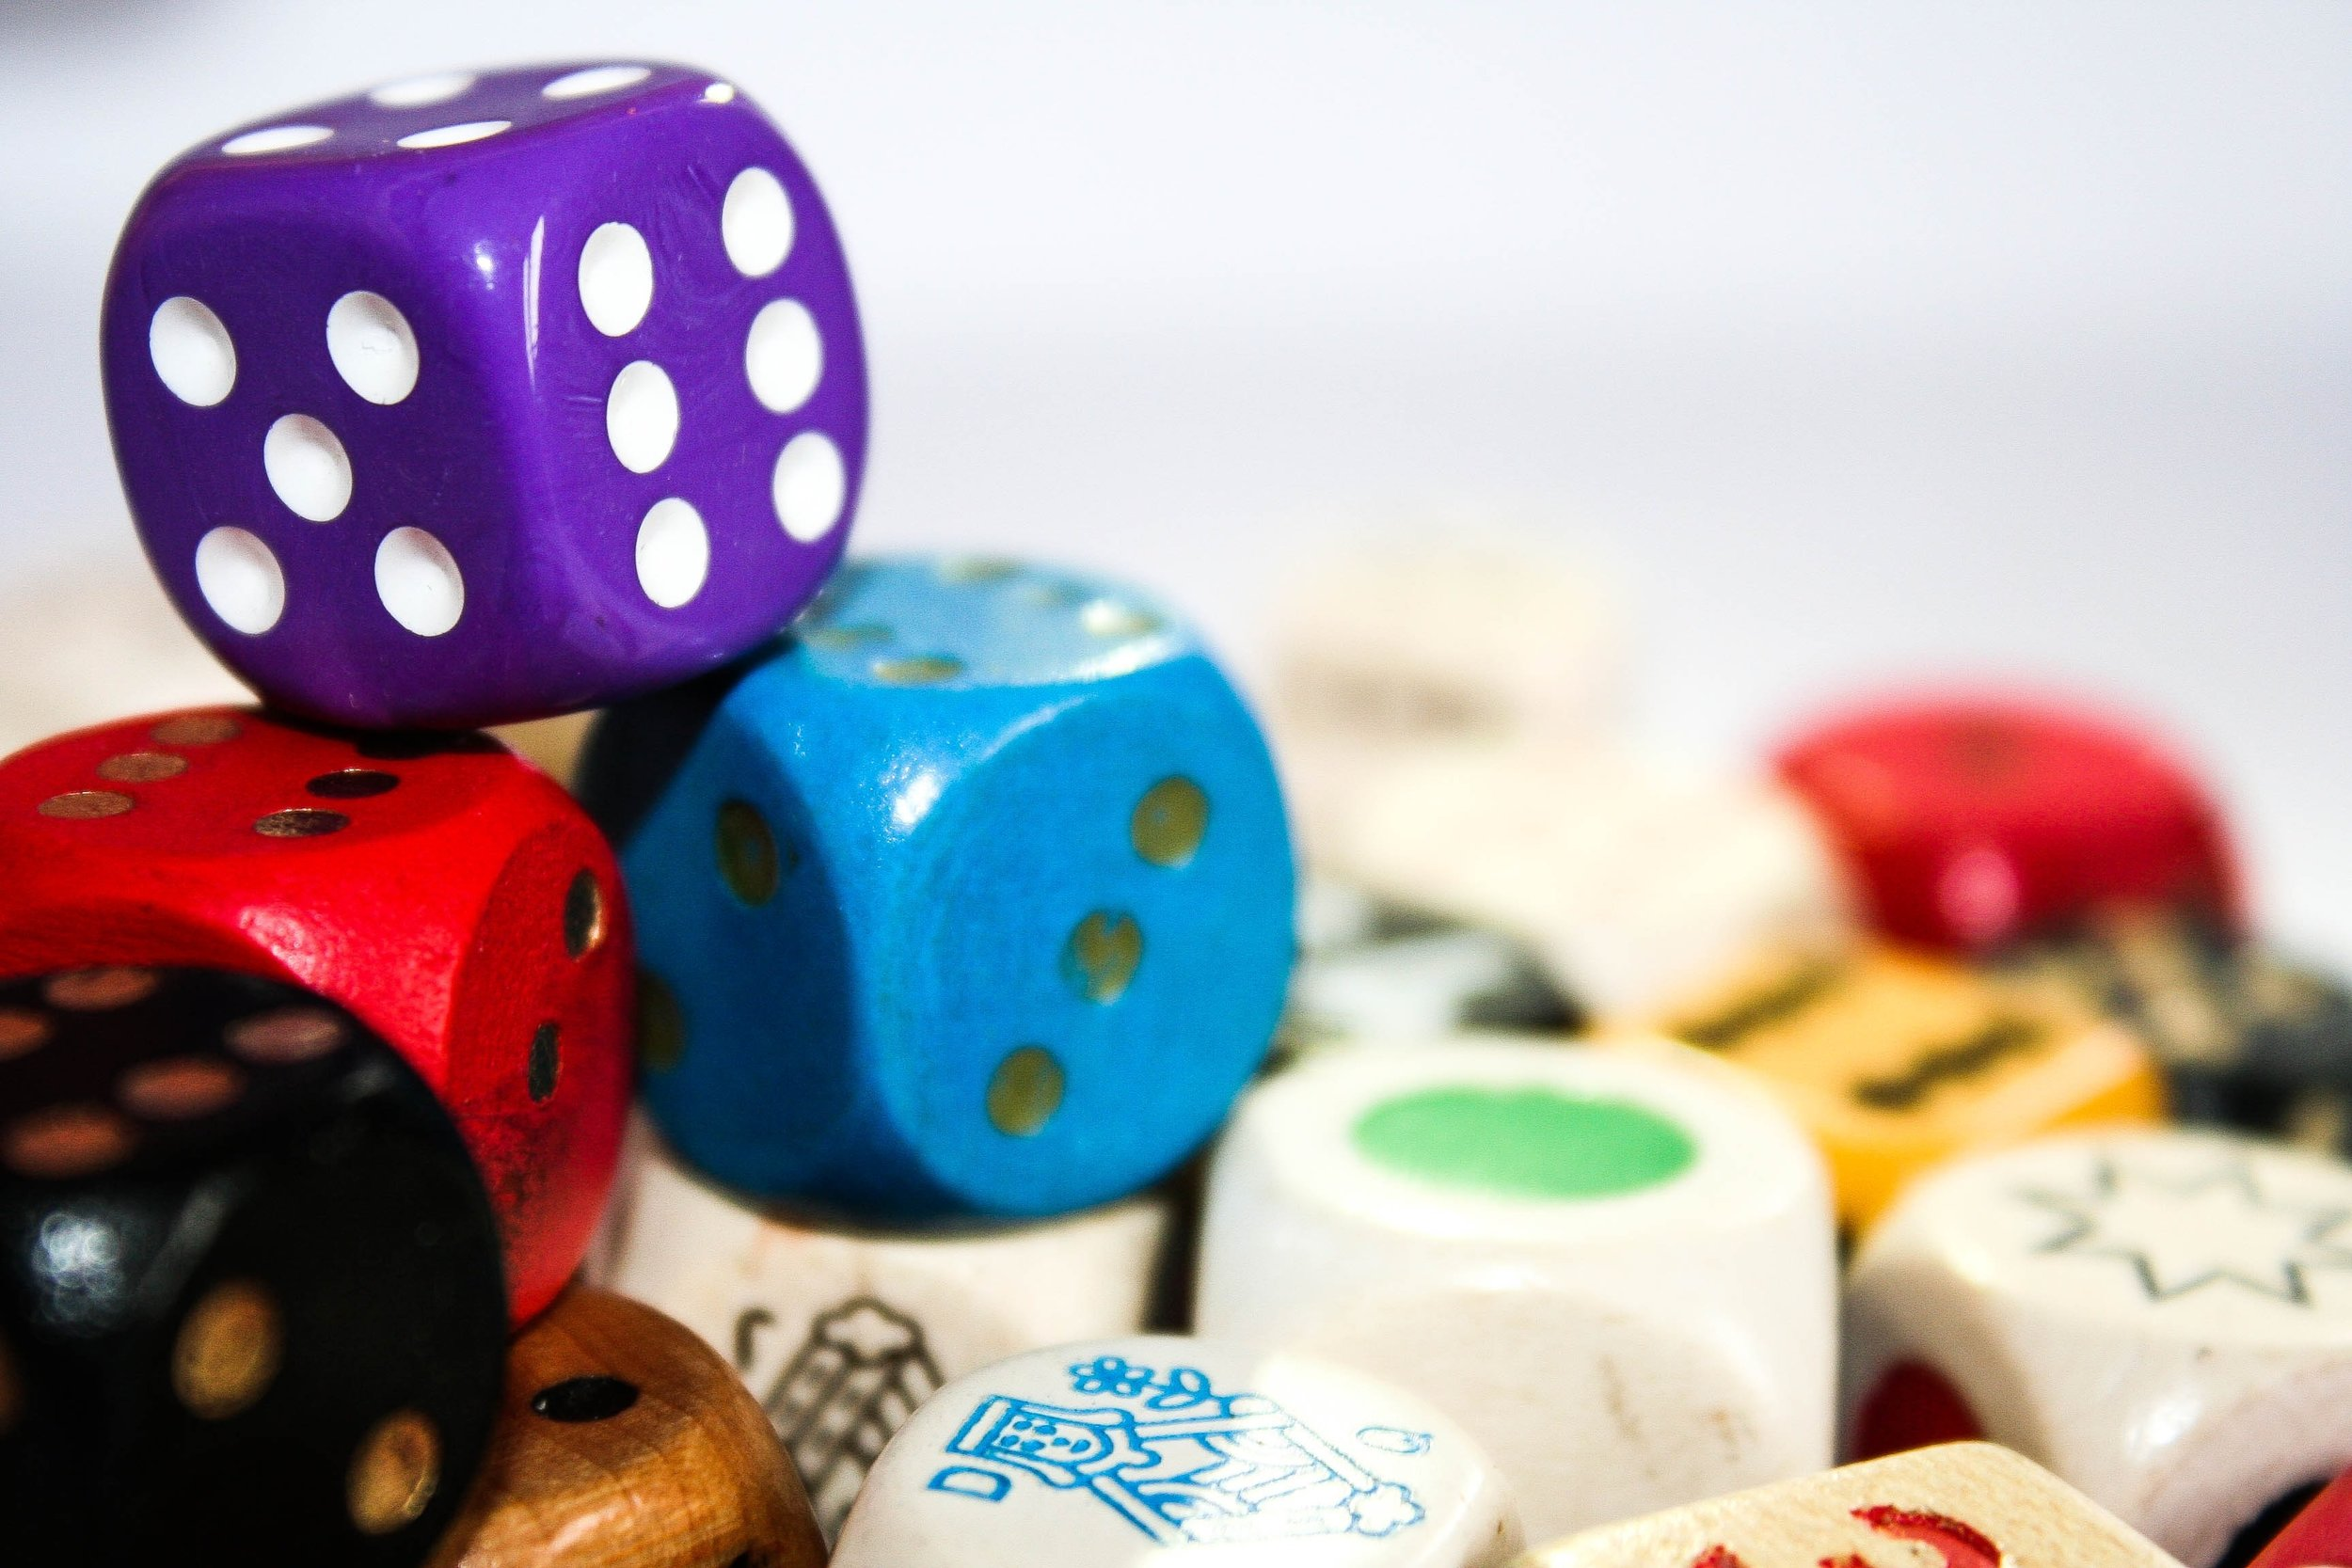 The Two Doctors Review - The Two Doctors Review highlights previously unknown board games and their designers, alongside our analysis and review of indie authors and novels.